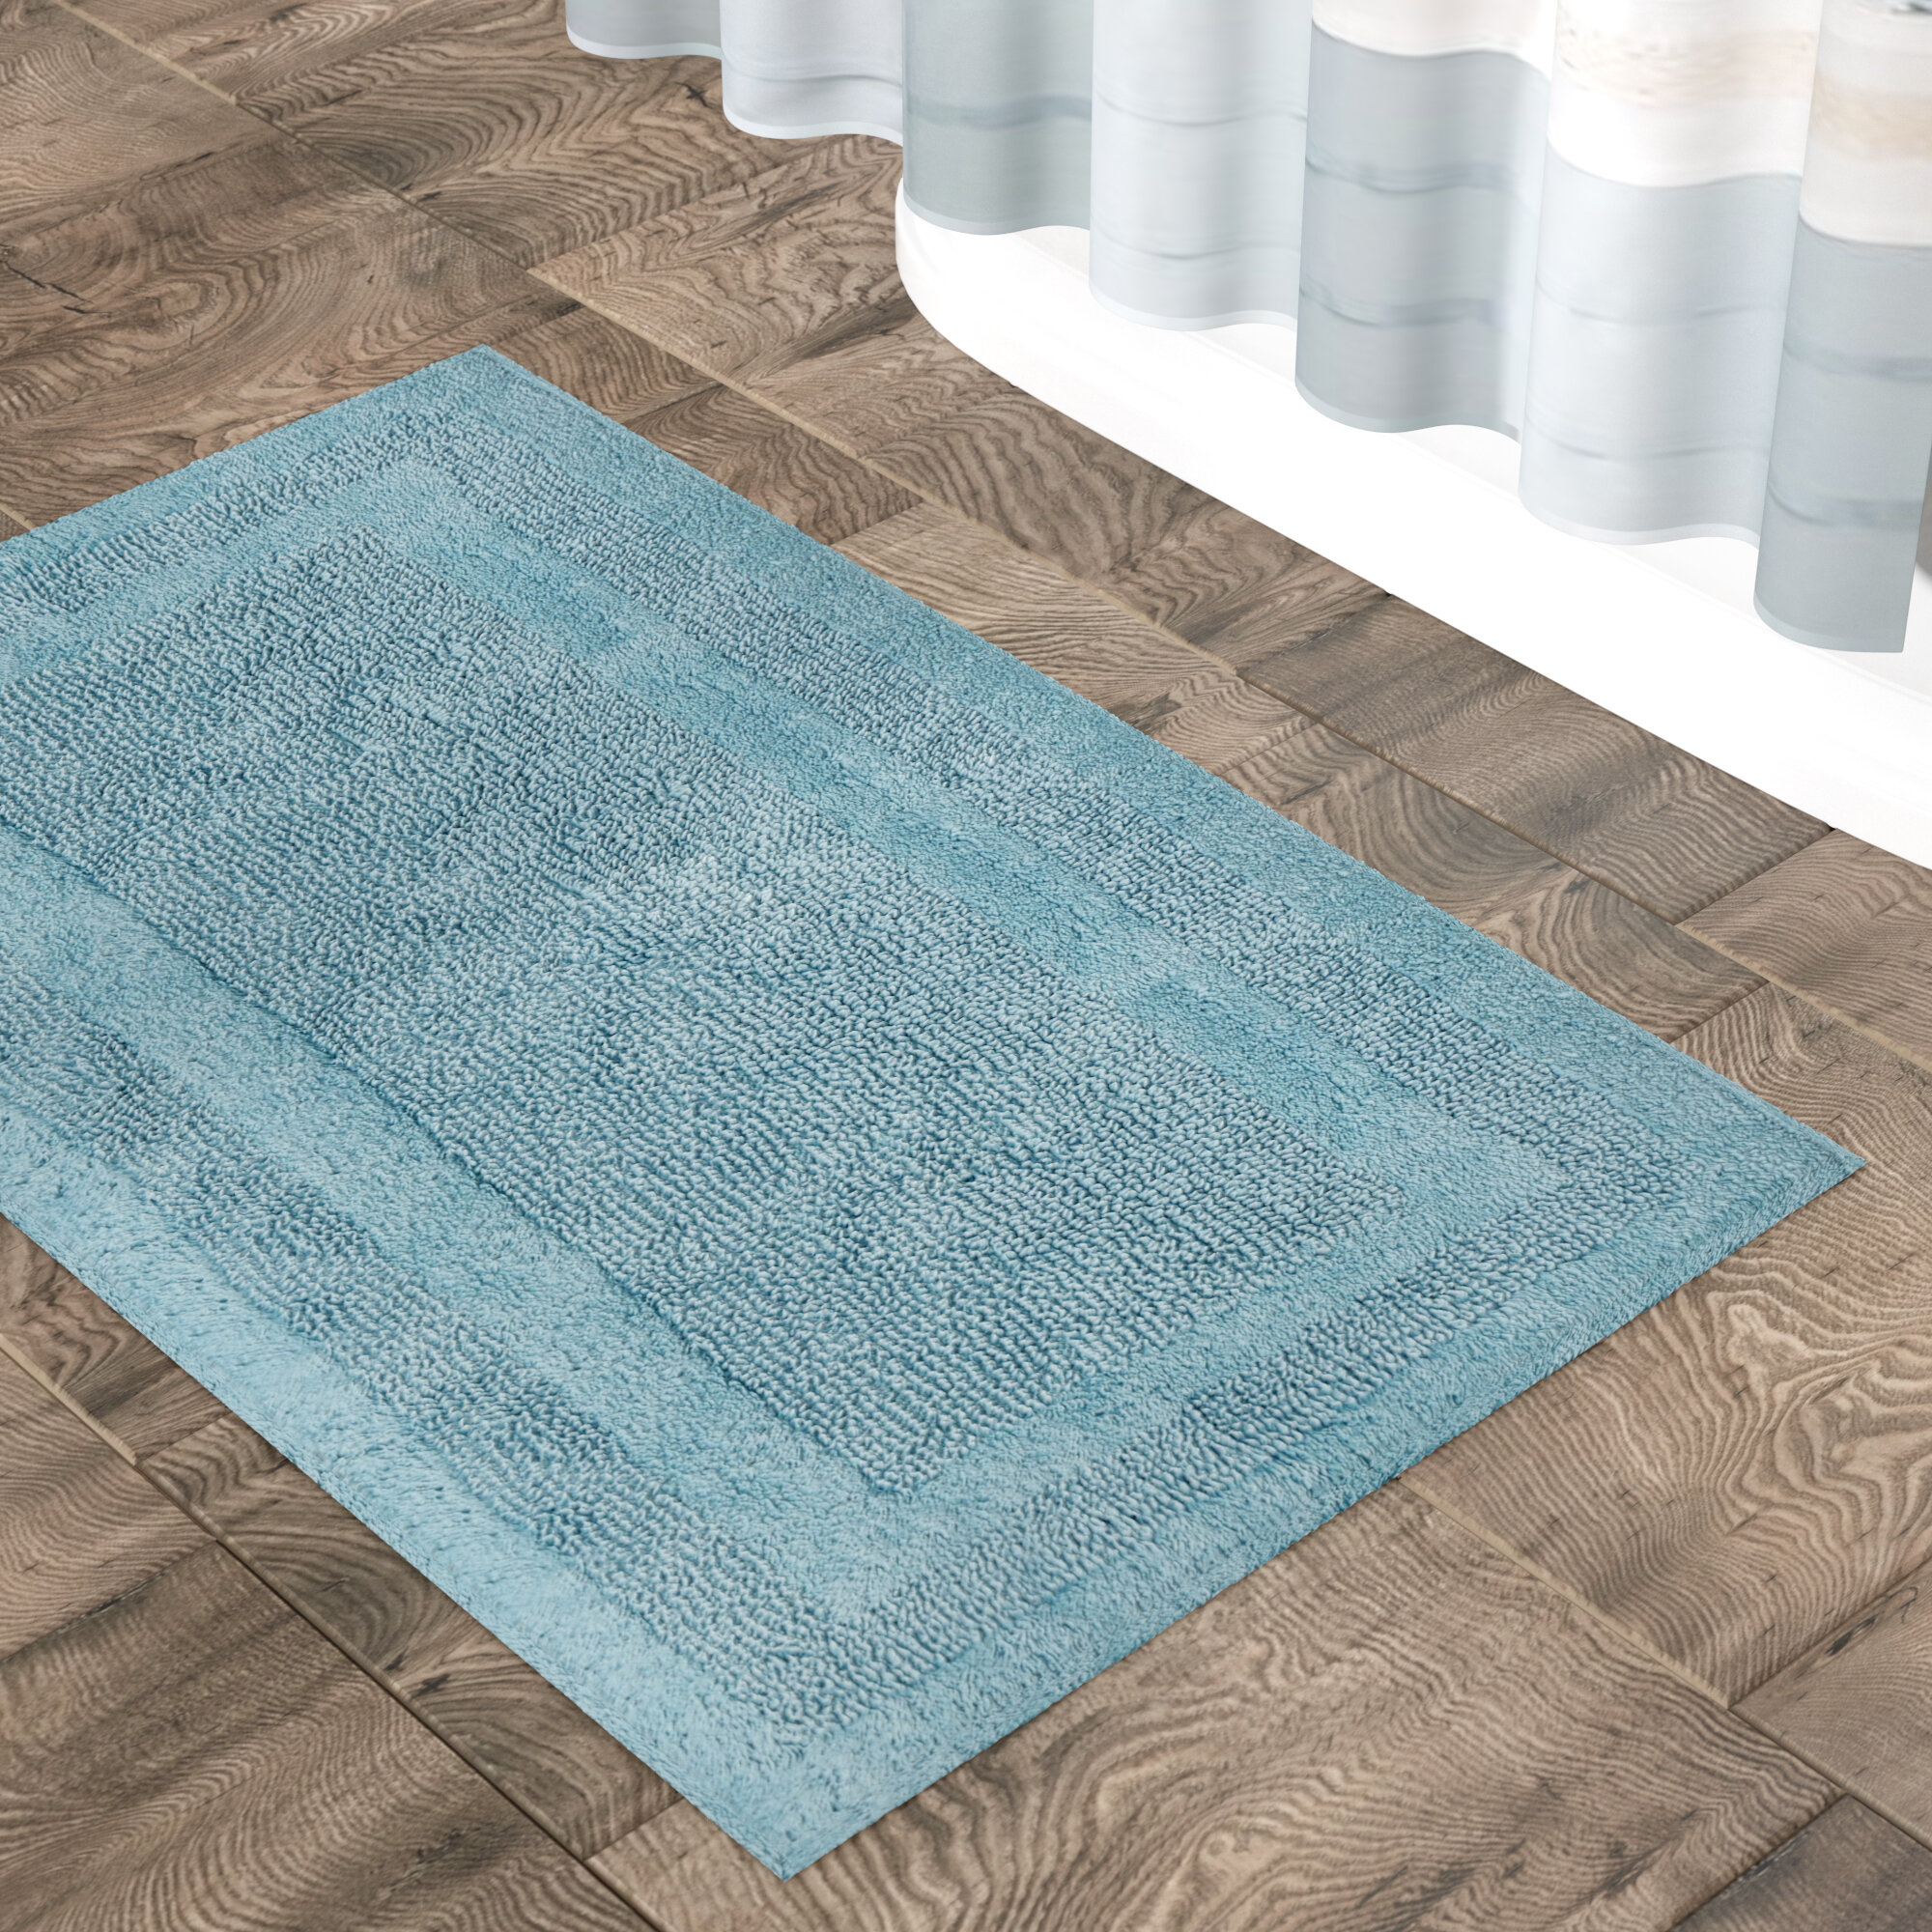 towel microfibre bain harman category mat bath mats product madame